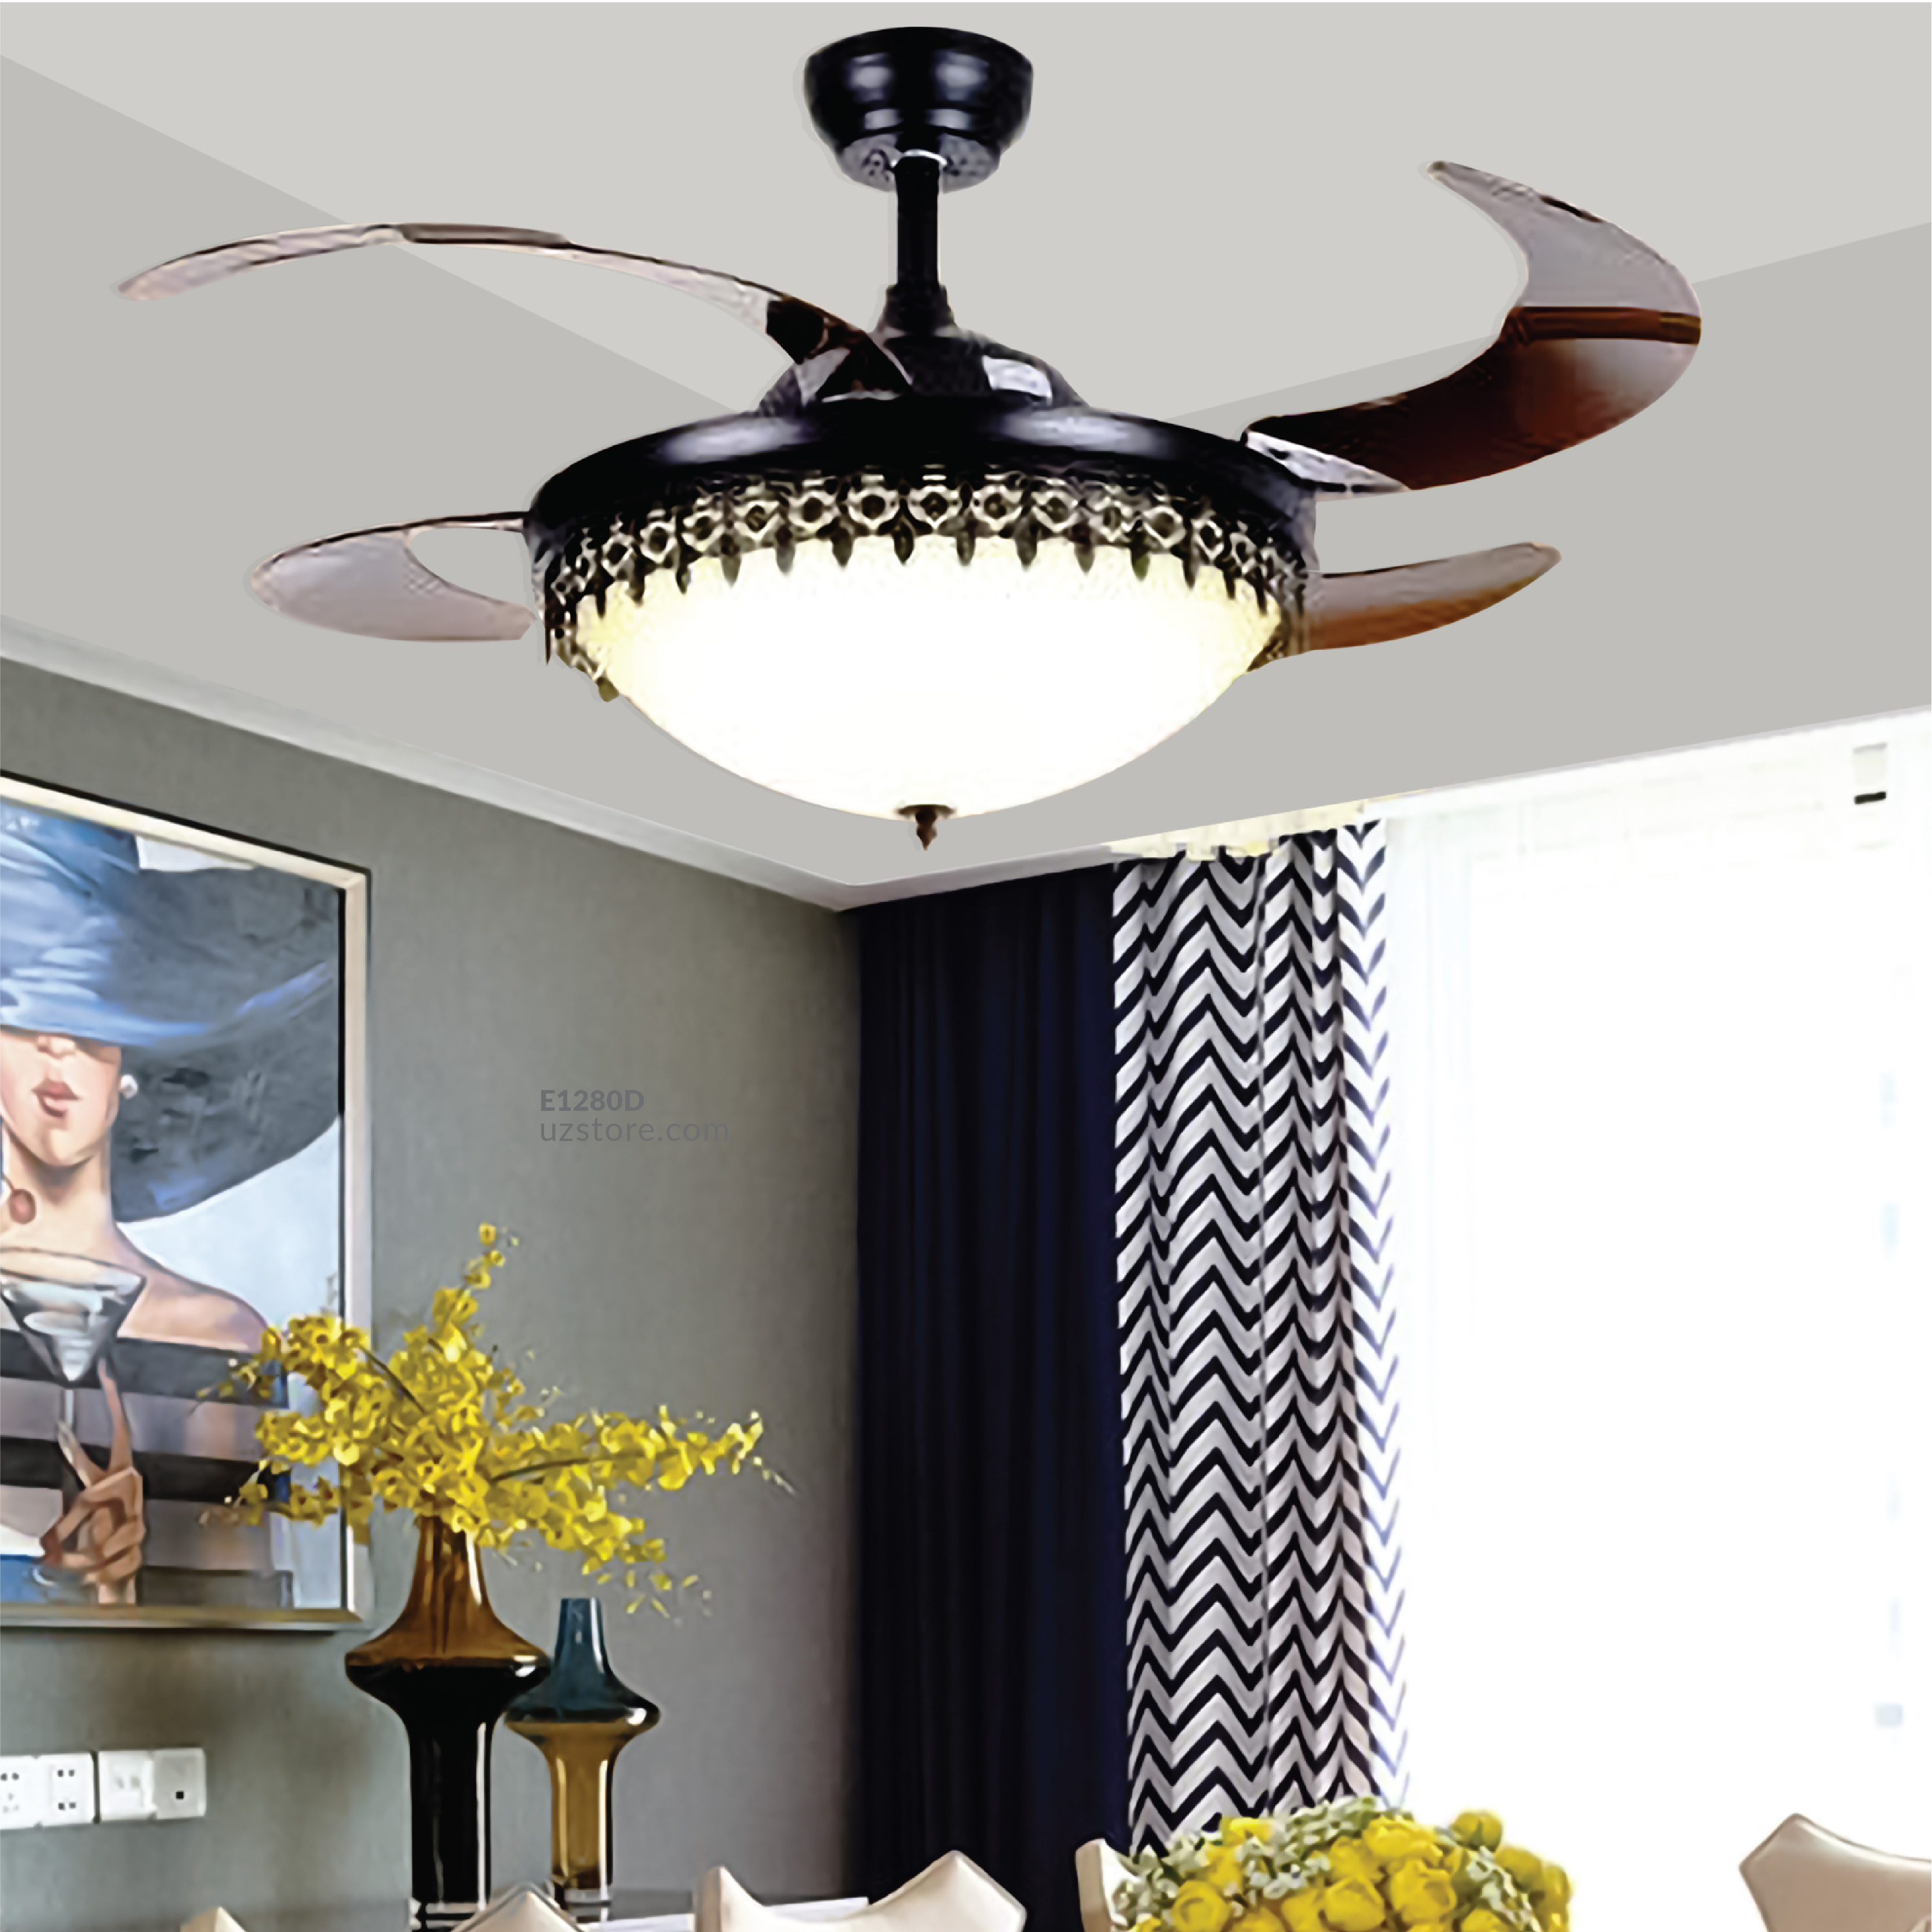 Decorative Fan With LED 3073-F42-3131